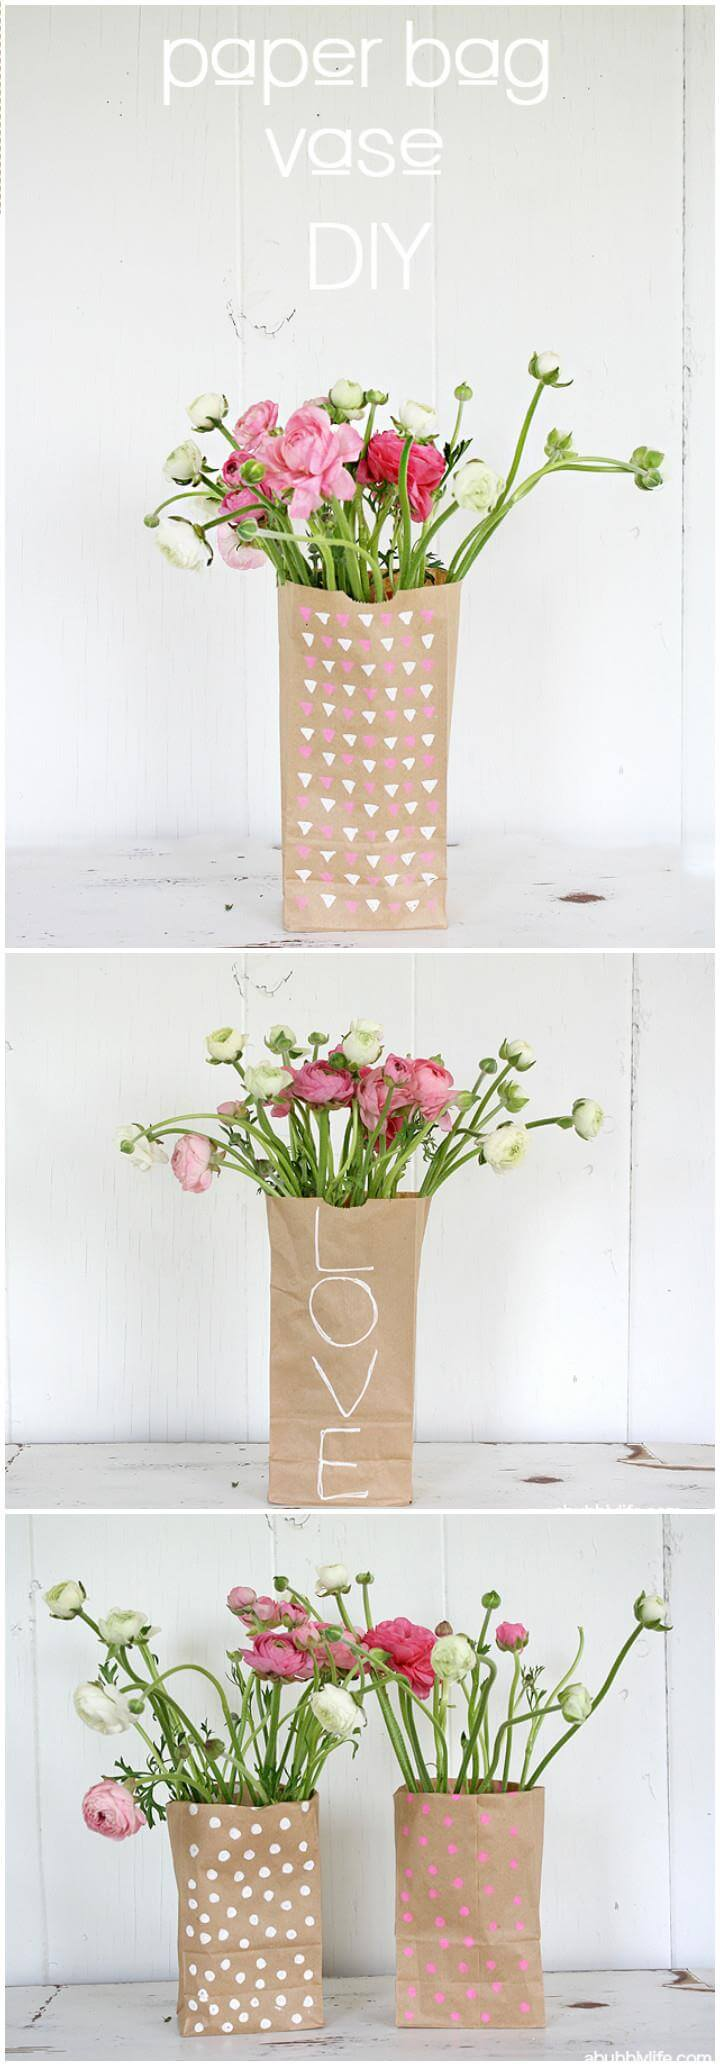 Diy paper bag vase crafthubs 100 diy vases or centerpiece unique ways to diy your floridaeventfo Gallery